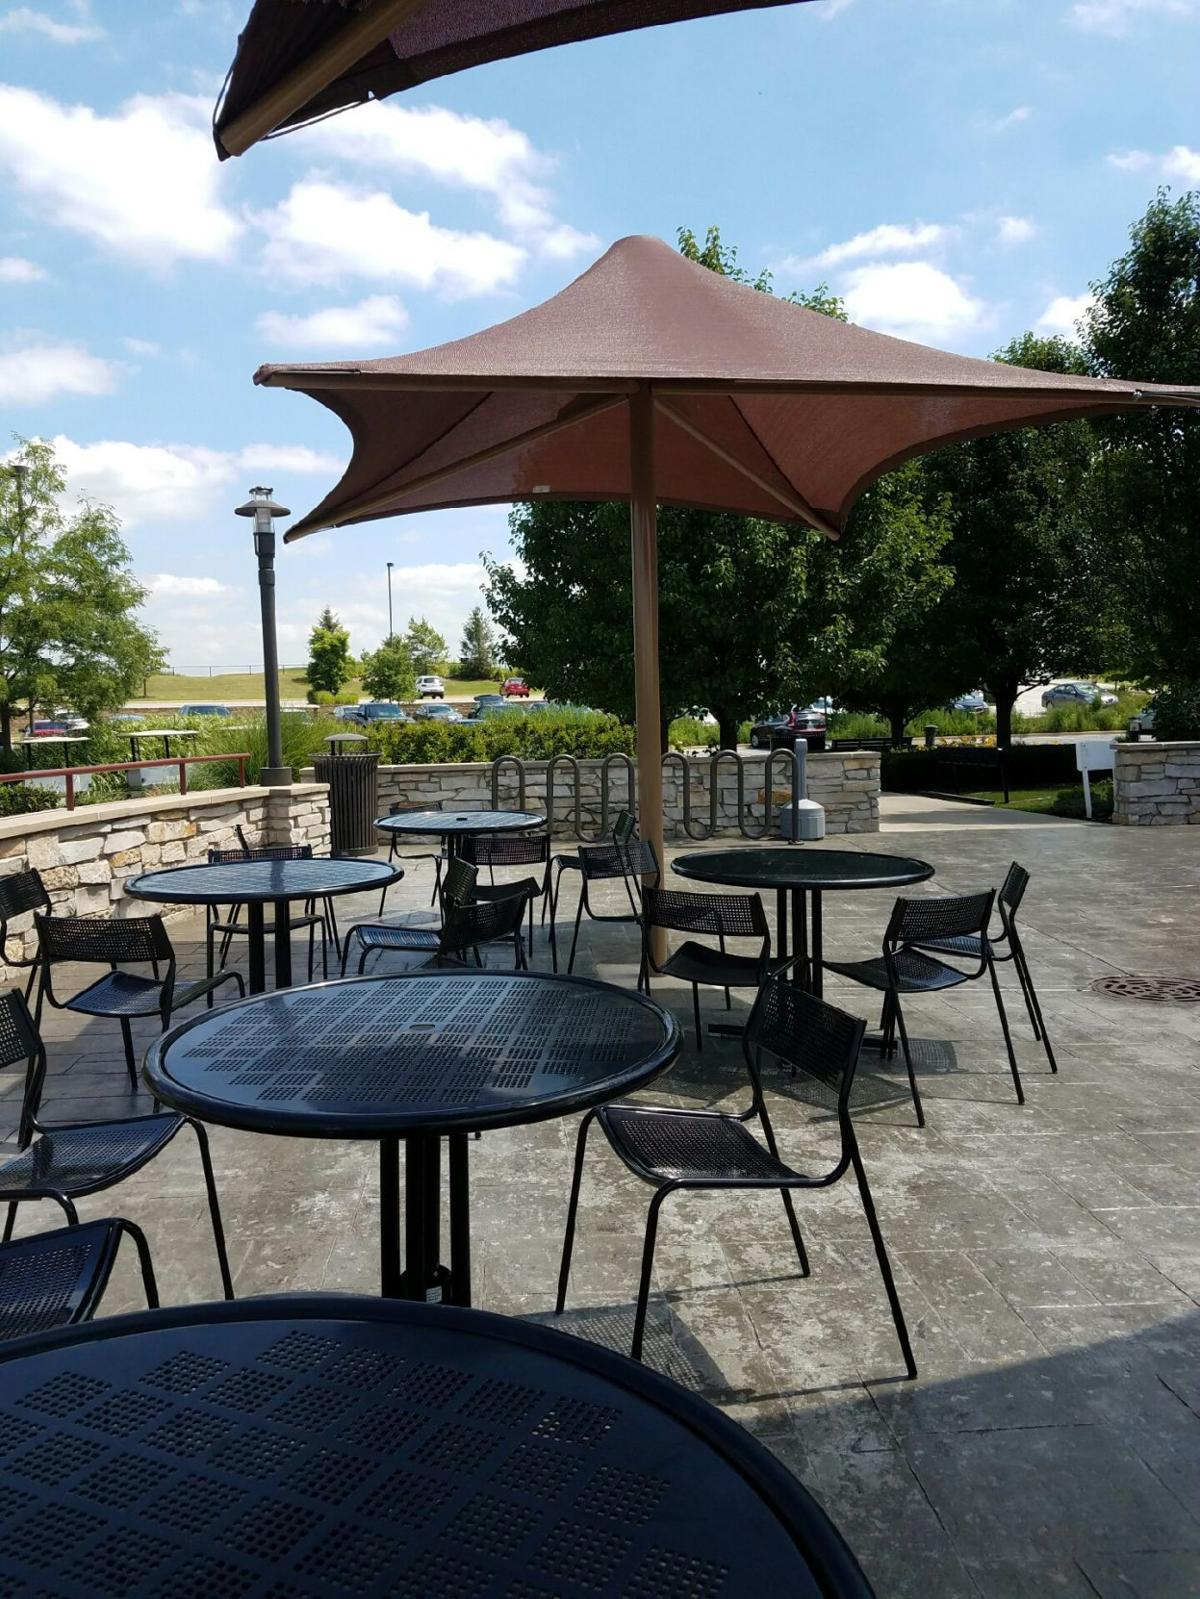 Outdoor seating area at The View